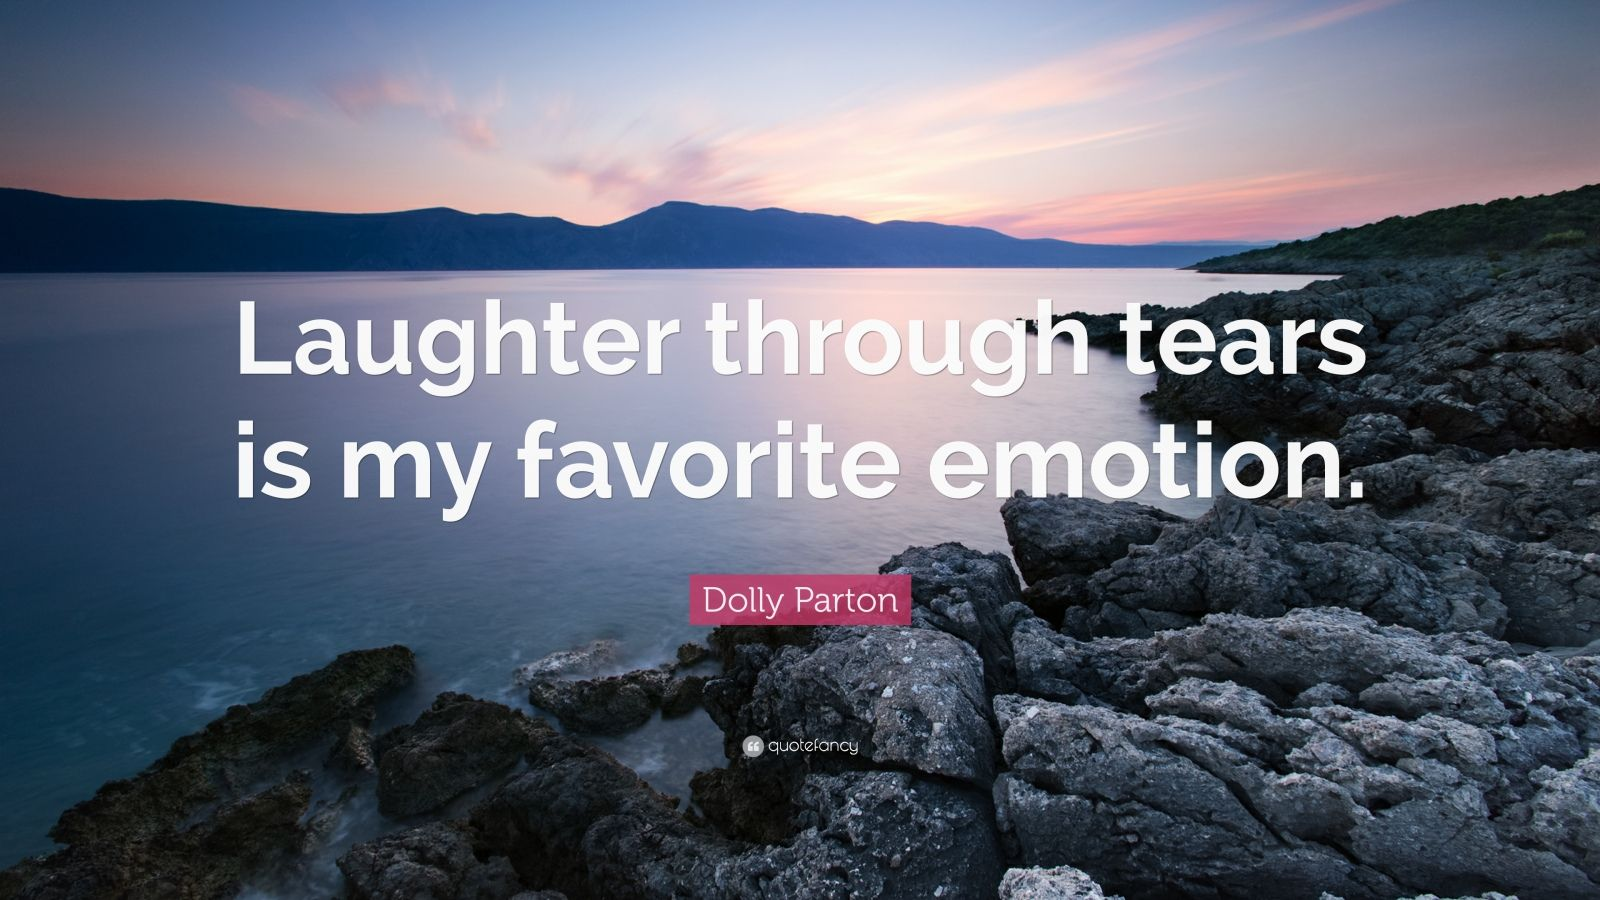 Dolly Parton Quotes 100 Wallpapers Quotefancy